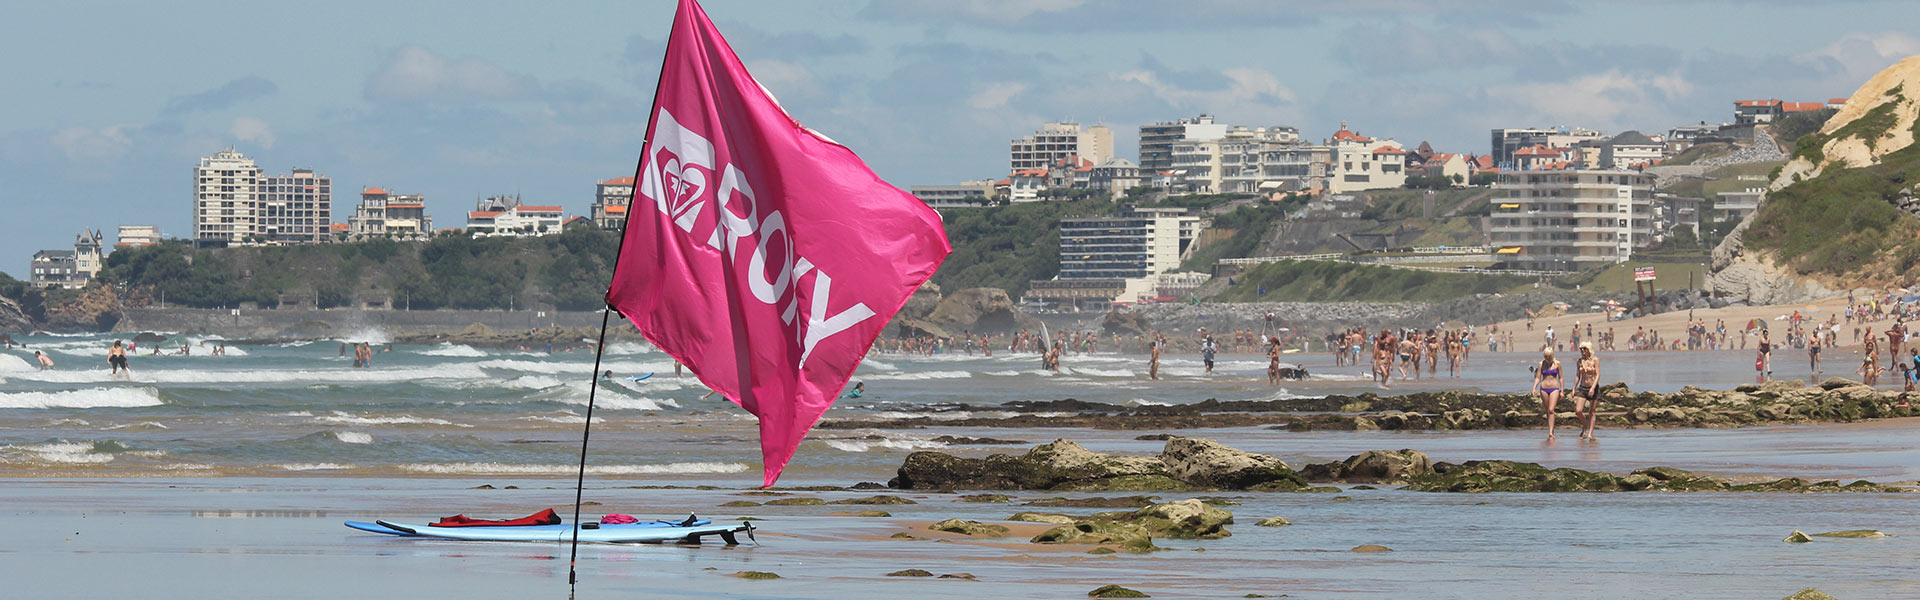 biarritz-cote-basque-surf-camp-feminin-roxy